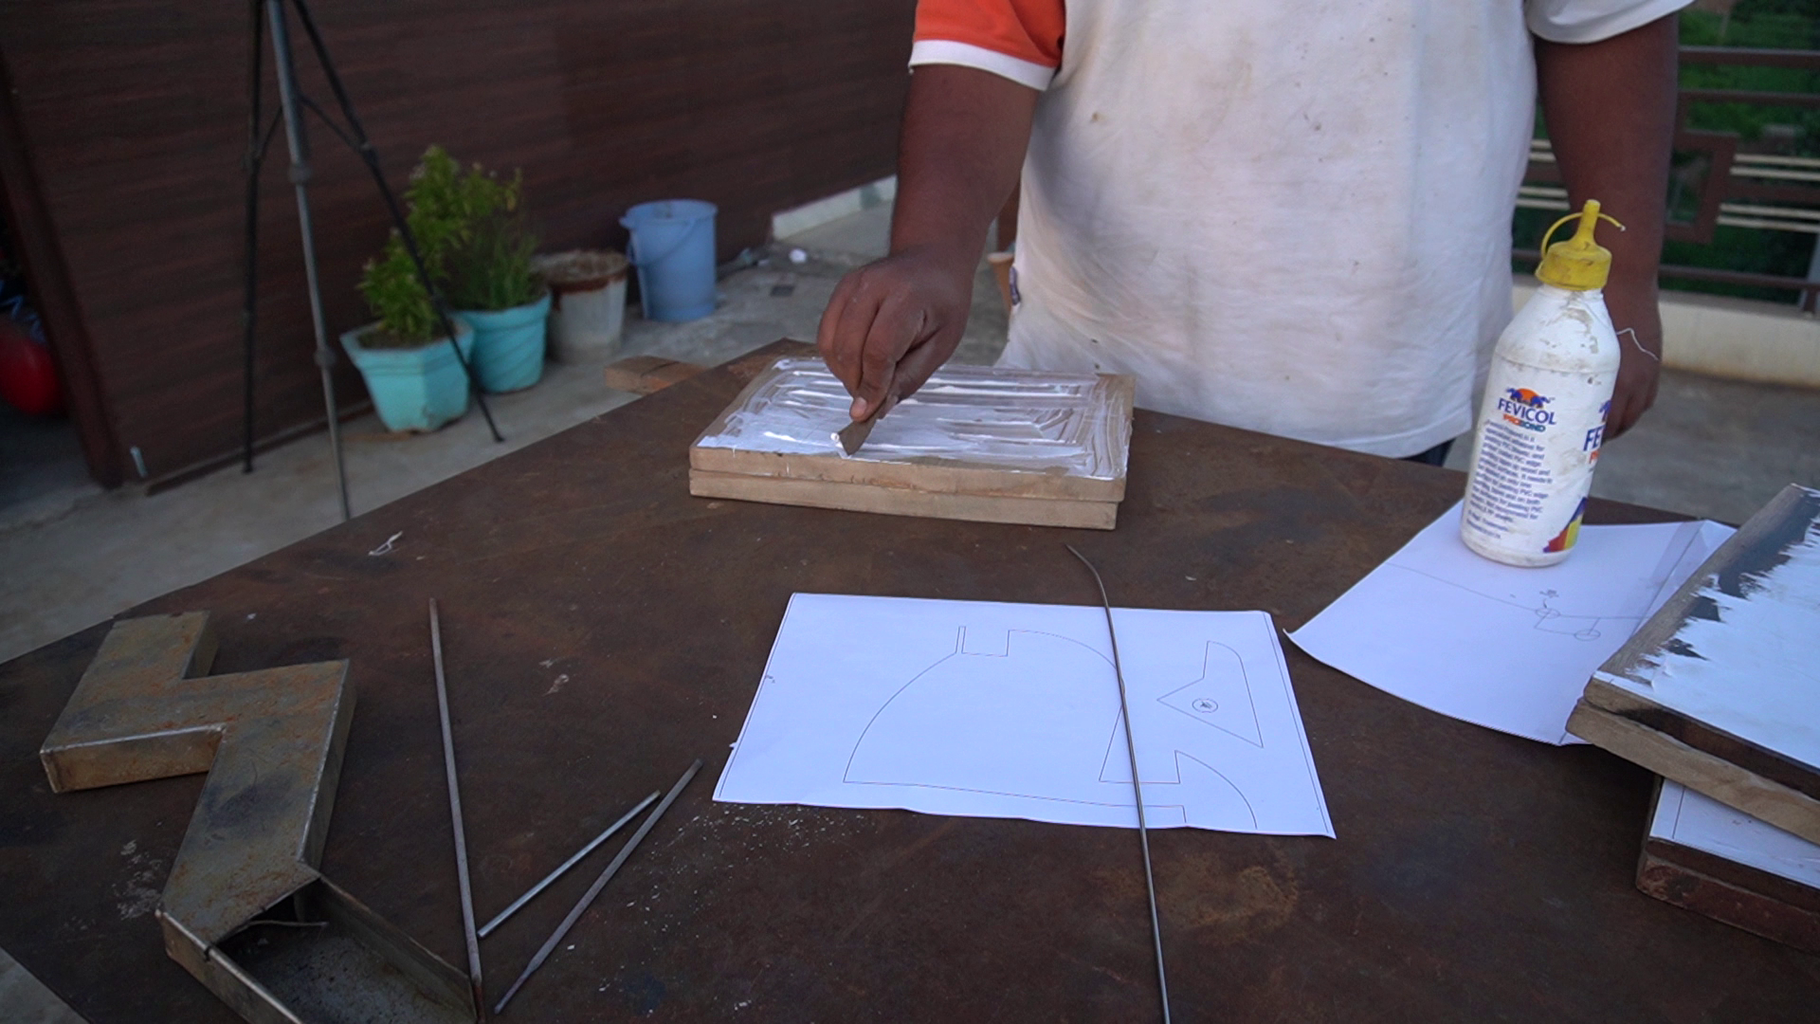 Glueing the Wood and Template